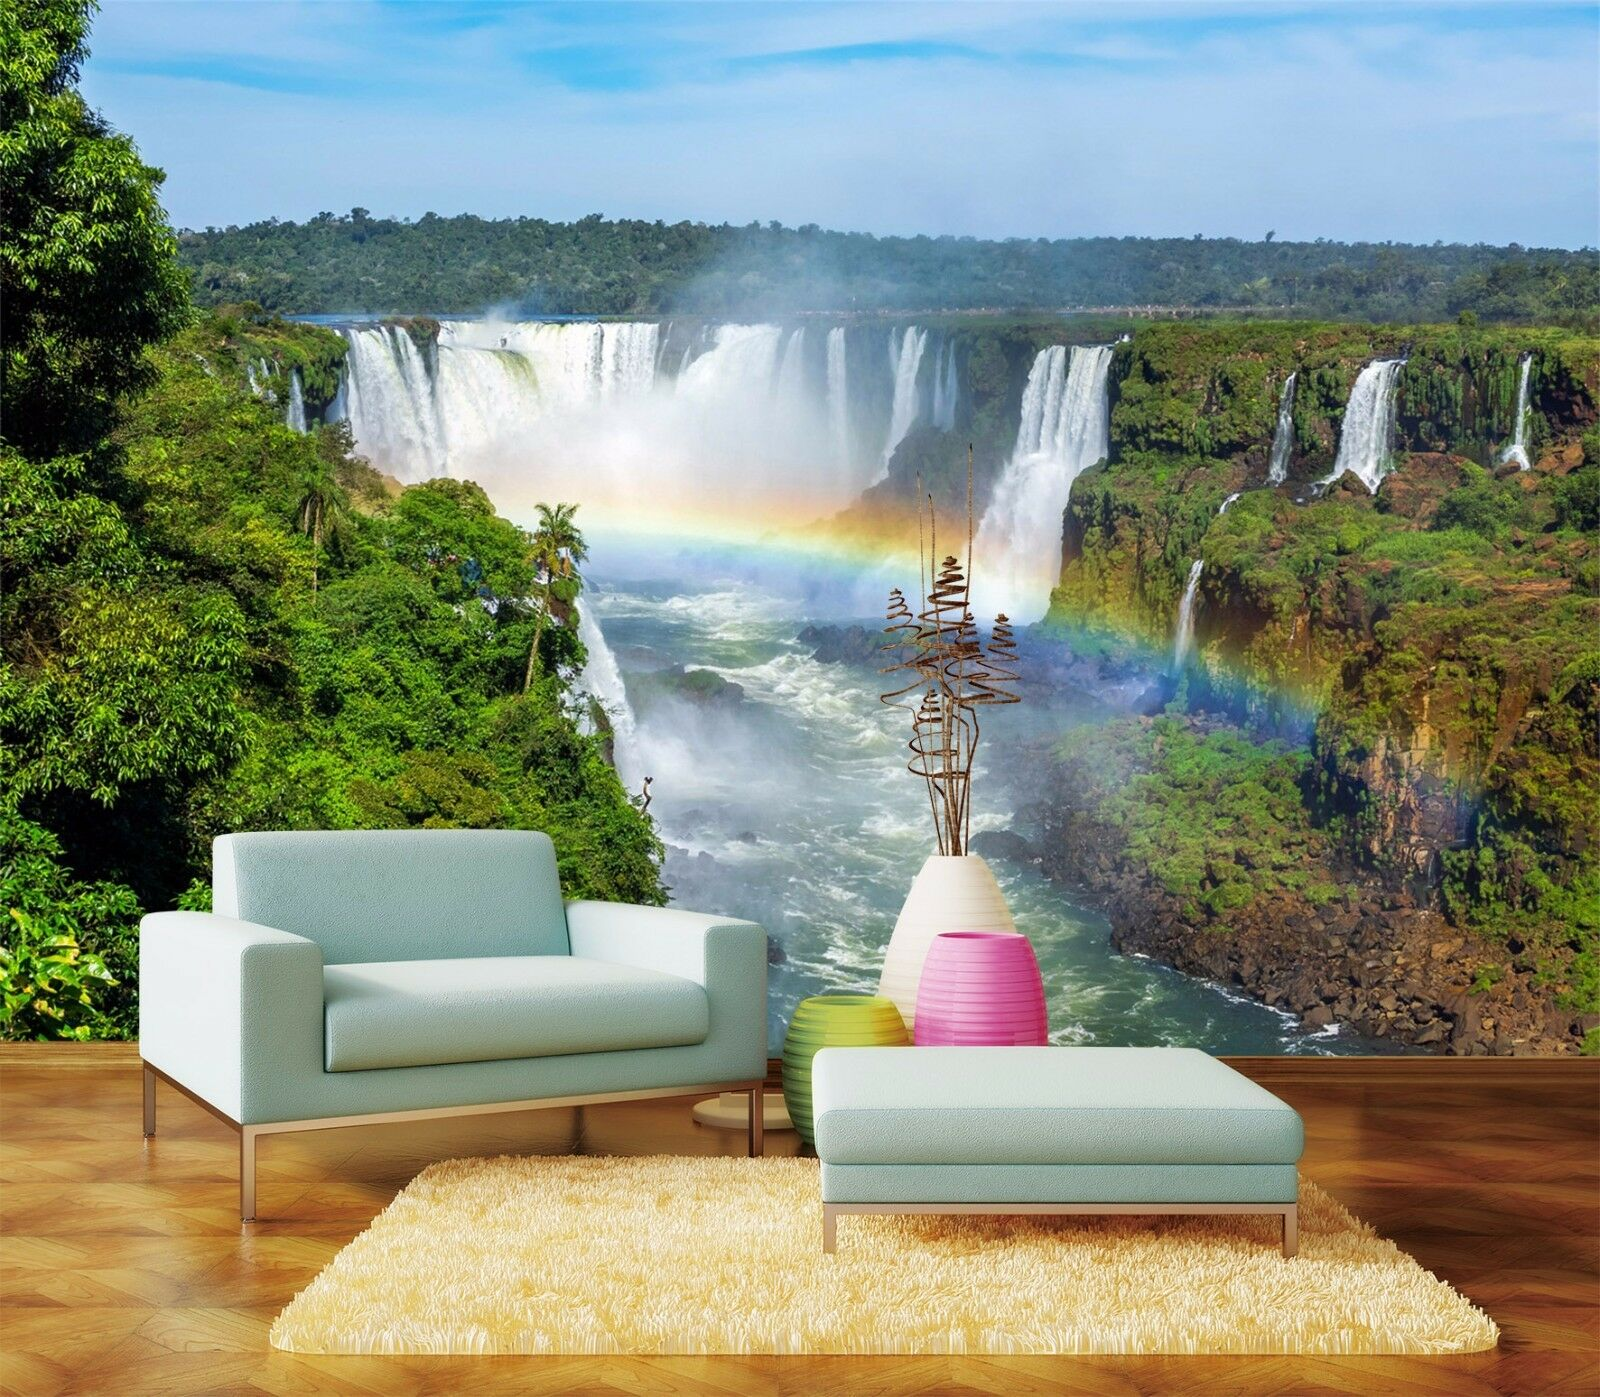 3D waterfall River trees Wall Paper Print Decal Wall Deco Indoor wall Mural